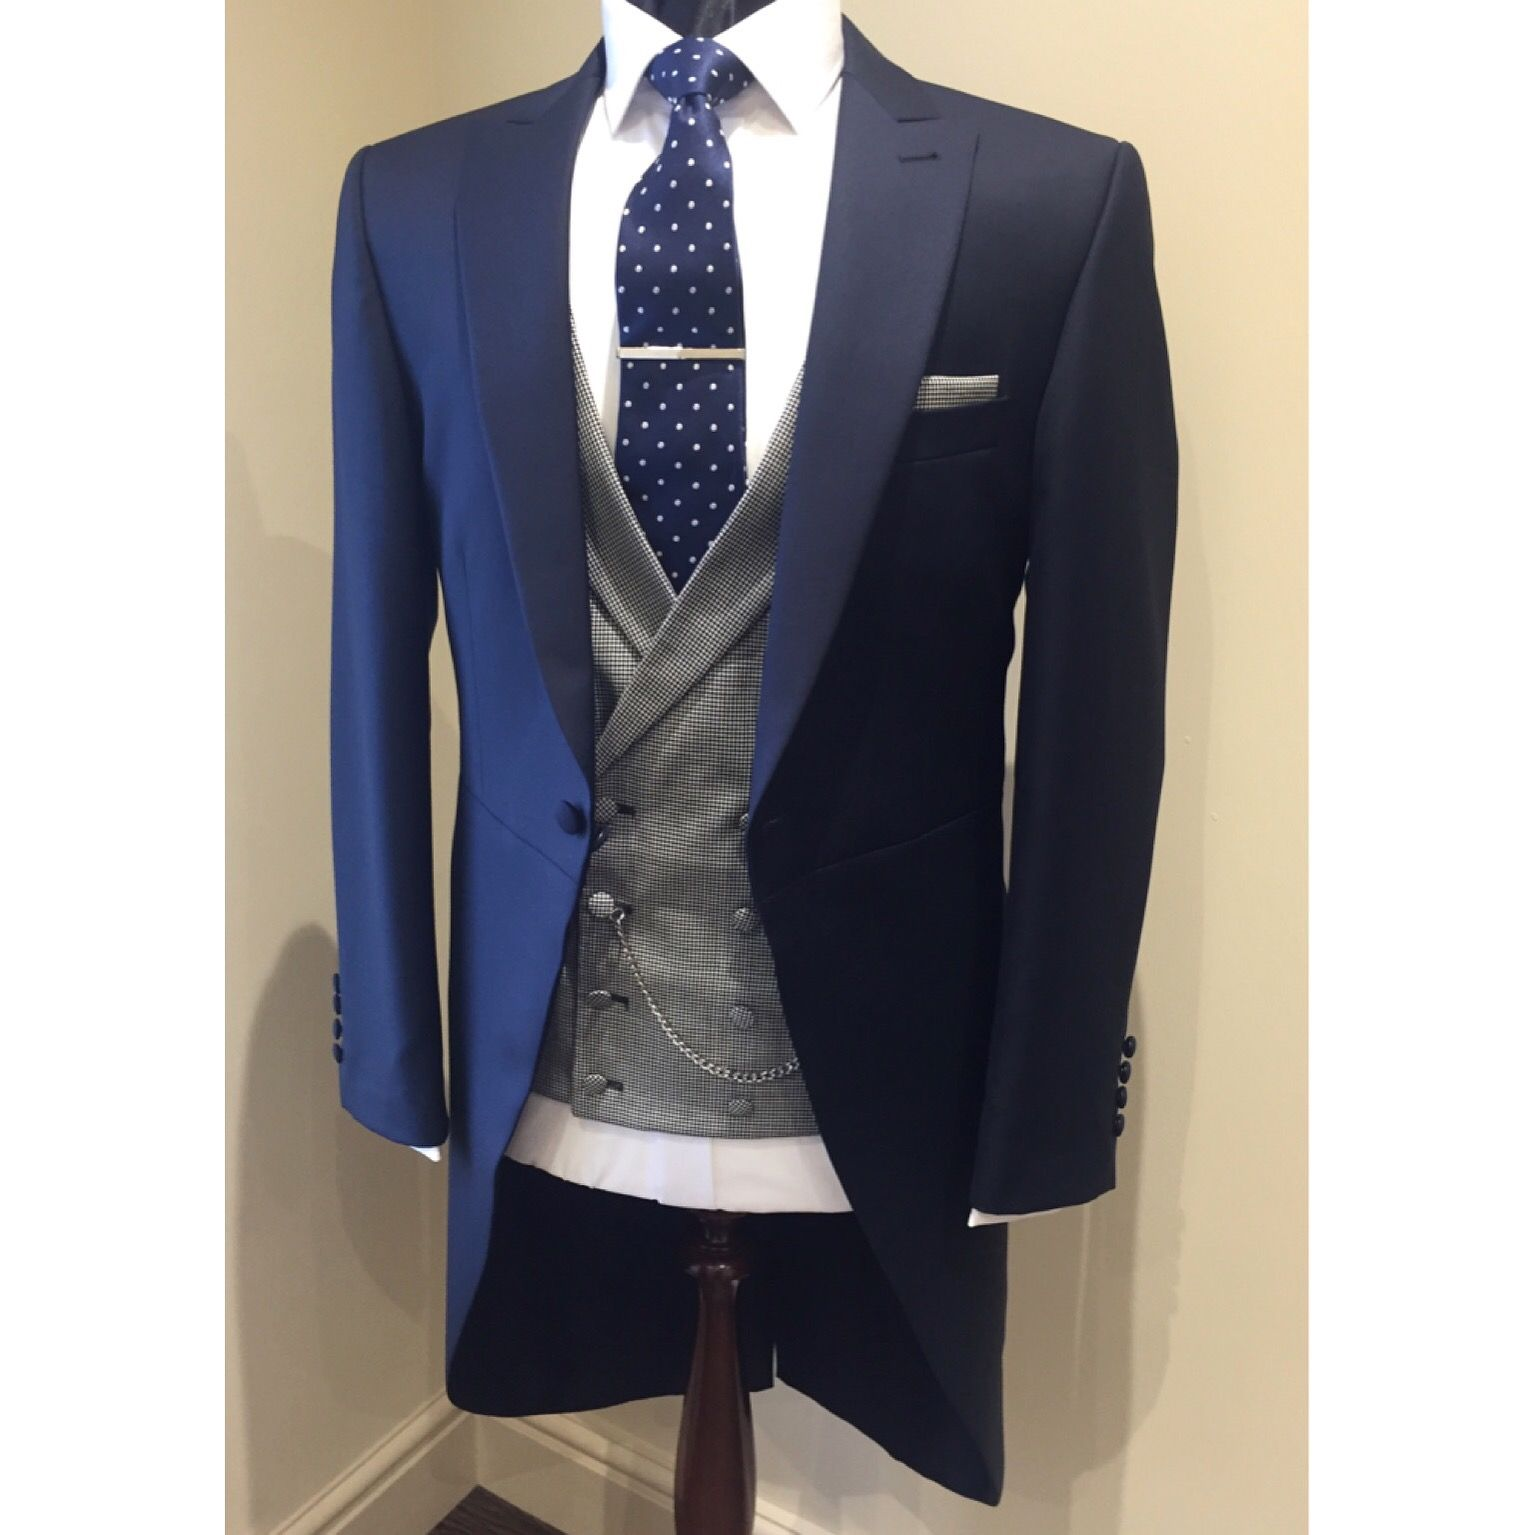 Navy Morning Suit With Dogtooth Double Breasted Waistcoat And Navy Spot Tie Groom Wedding Suit Navy Suit Wedding Wedding Morning Suits Formal Wedding Suit